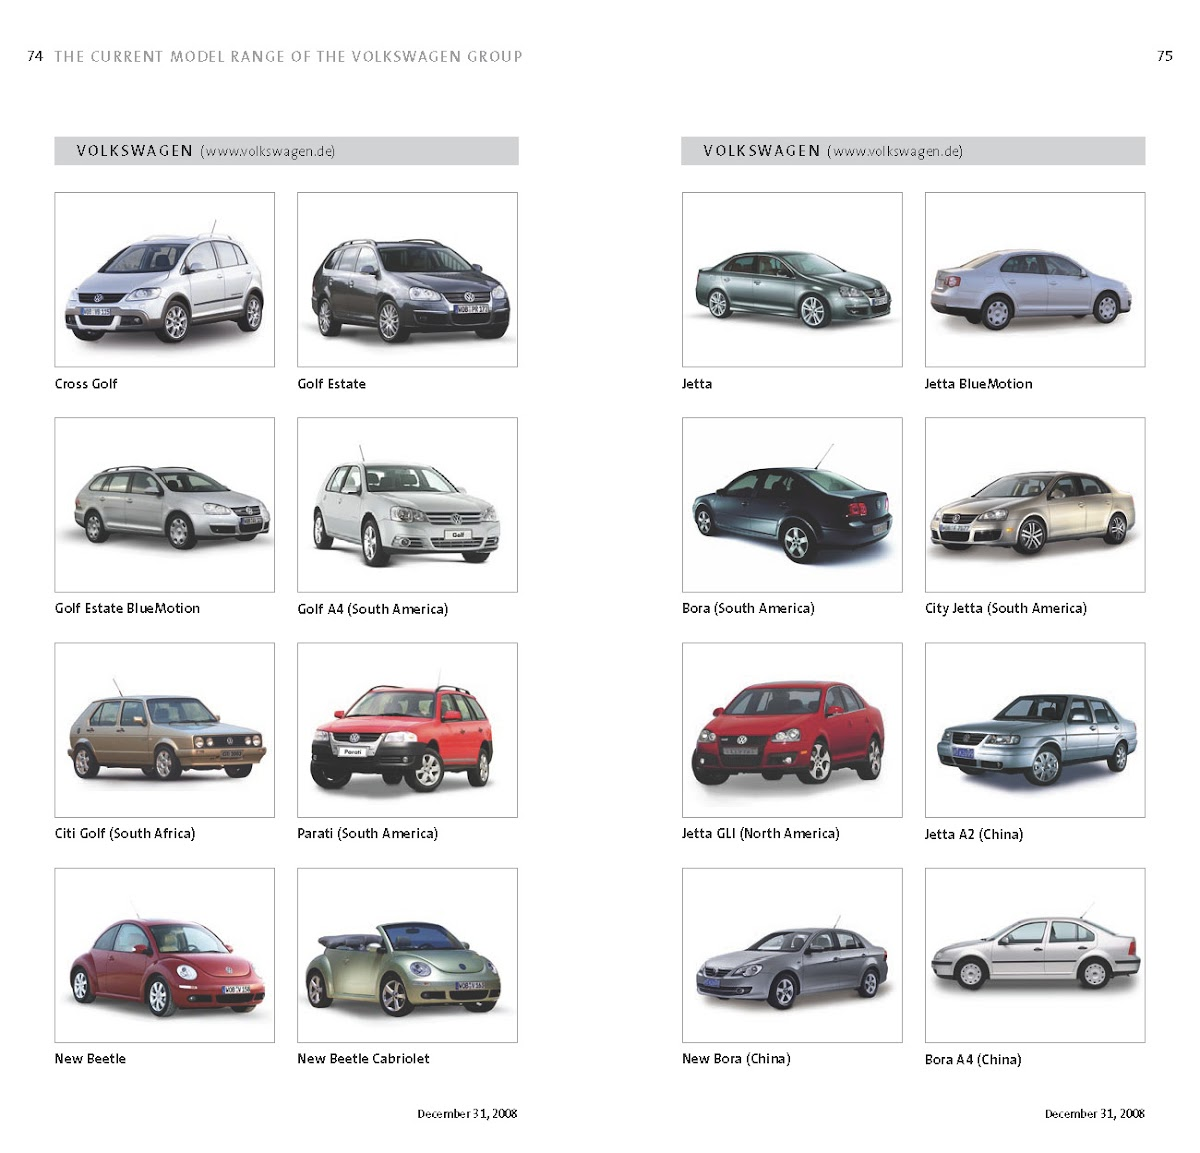 Volkswagen Group Latest Models >> Volkswagen Group Latest Models 2019 2020 New Car Release Date